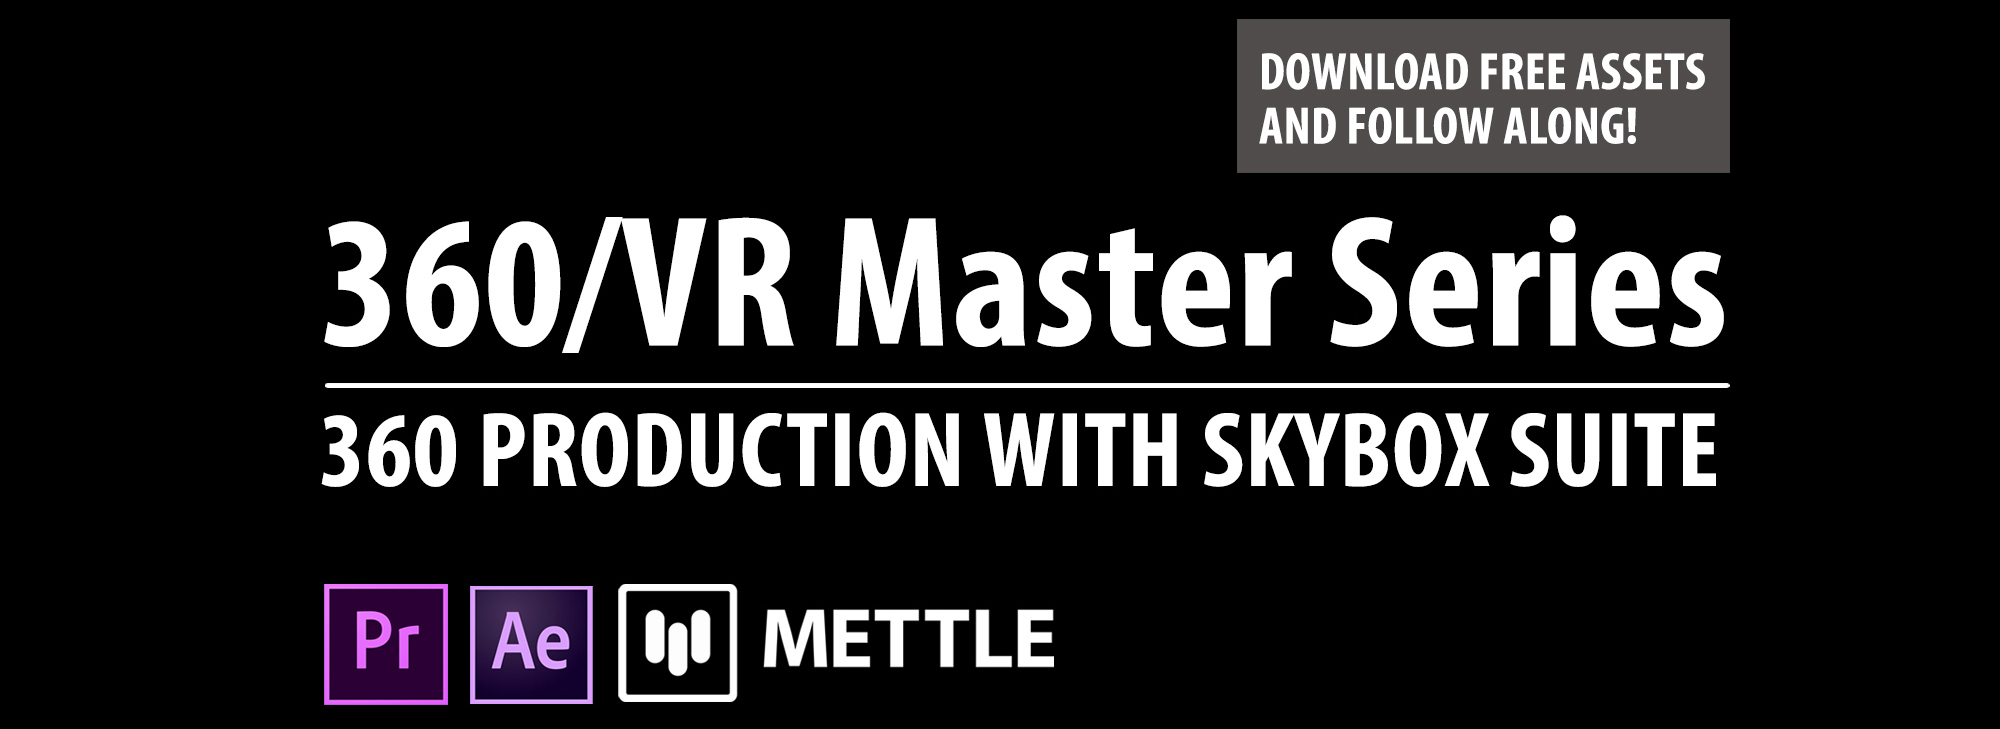 Mettle Featured Image 360 Vr Master Series